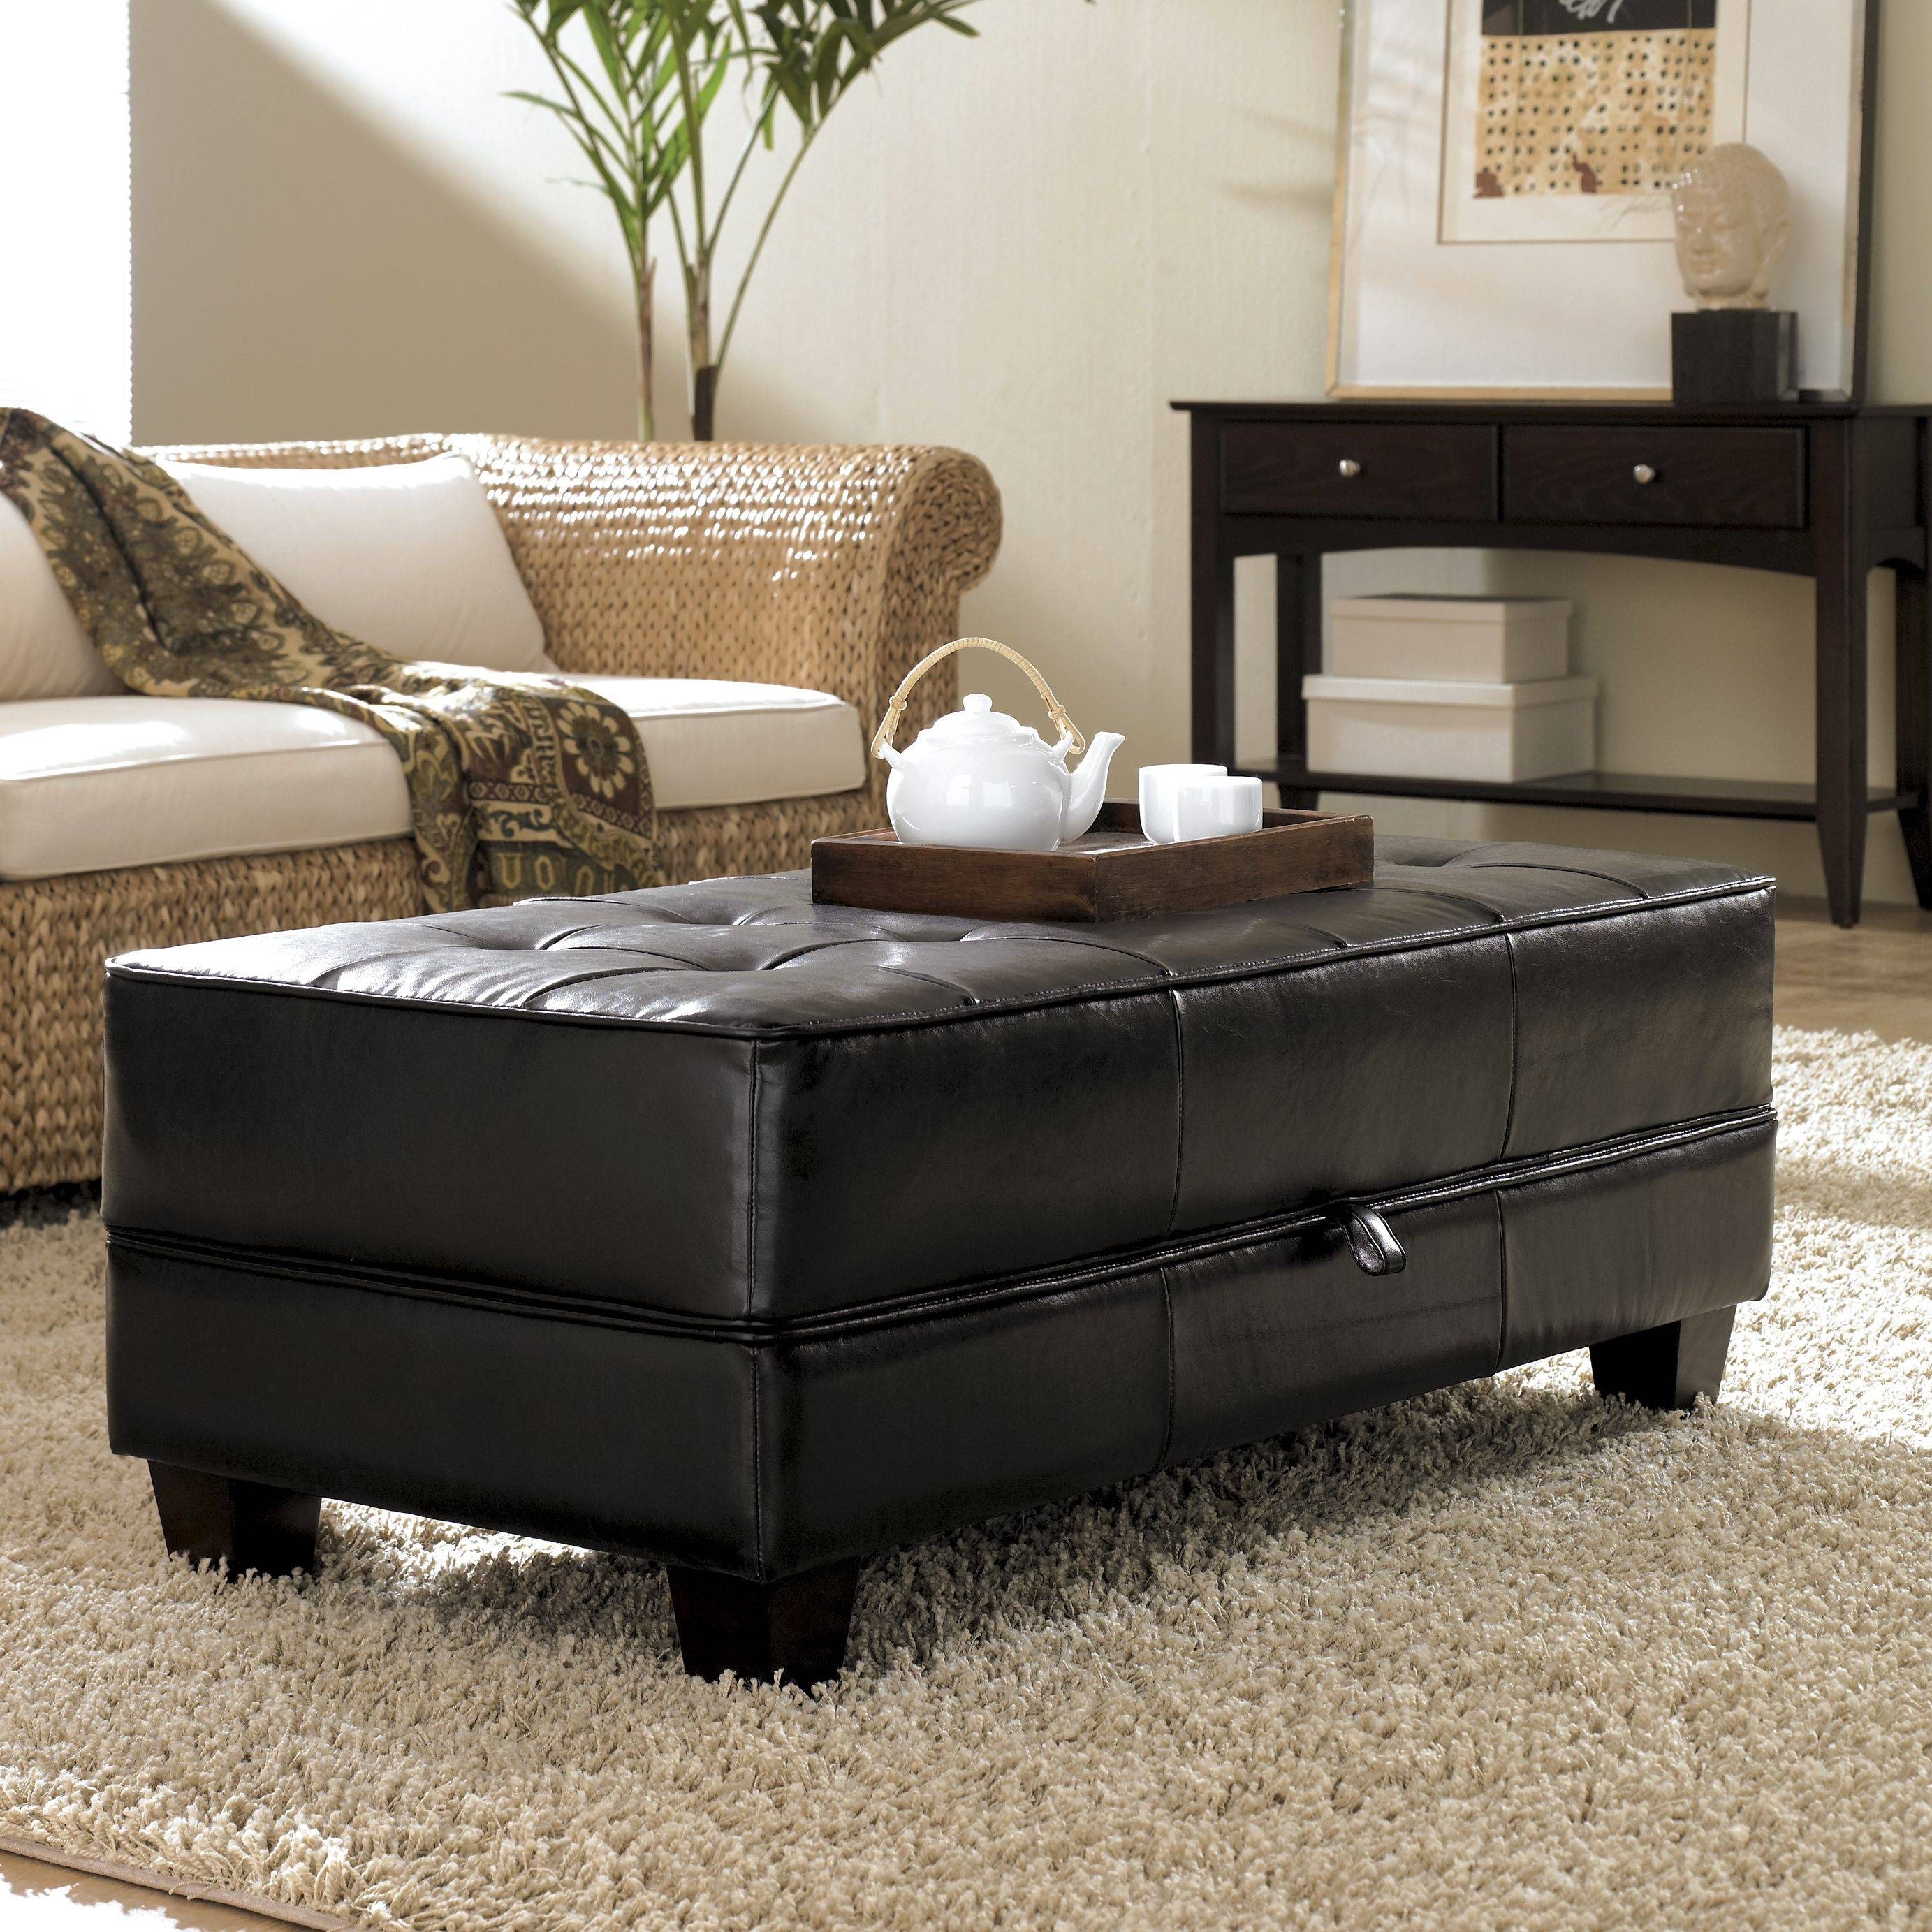 4 Tray Top Black Leather Storage Ottoman Coffee Table | Coffee within Brown Leather Ottoman Coffee Tables (Image 6 of 30)